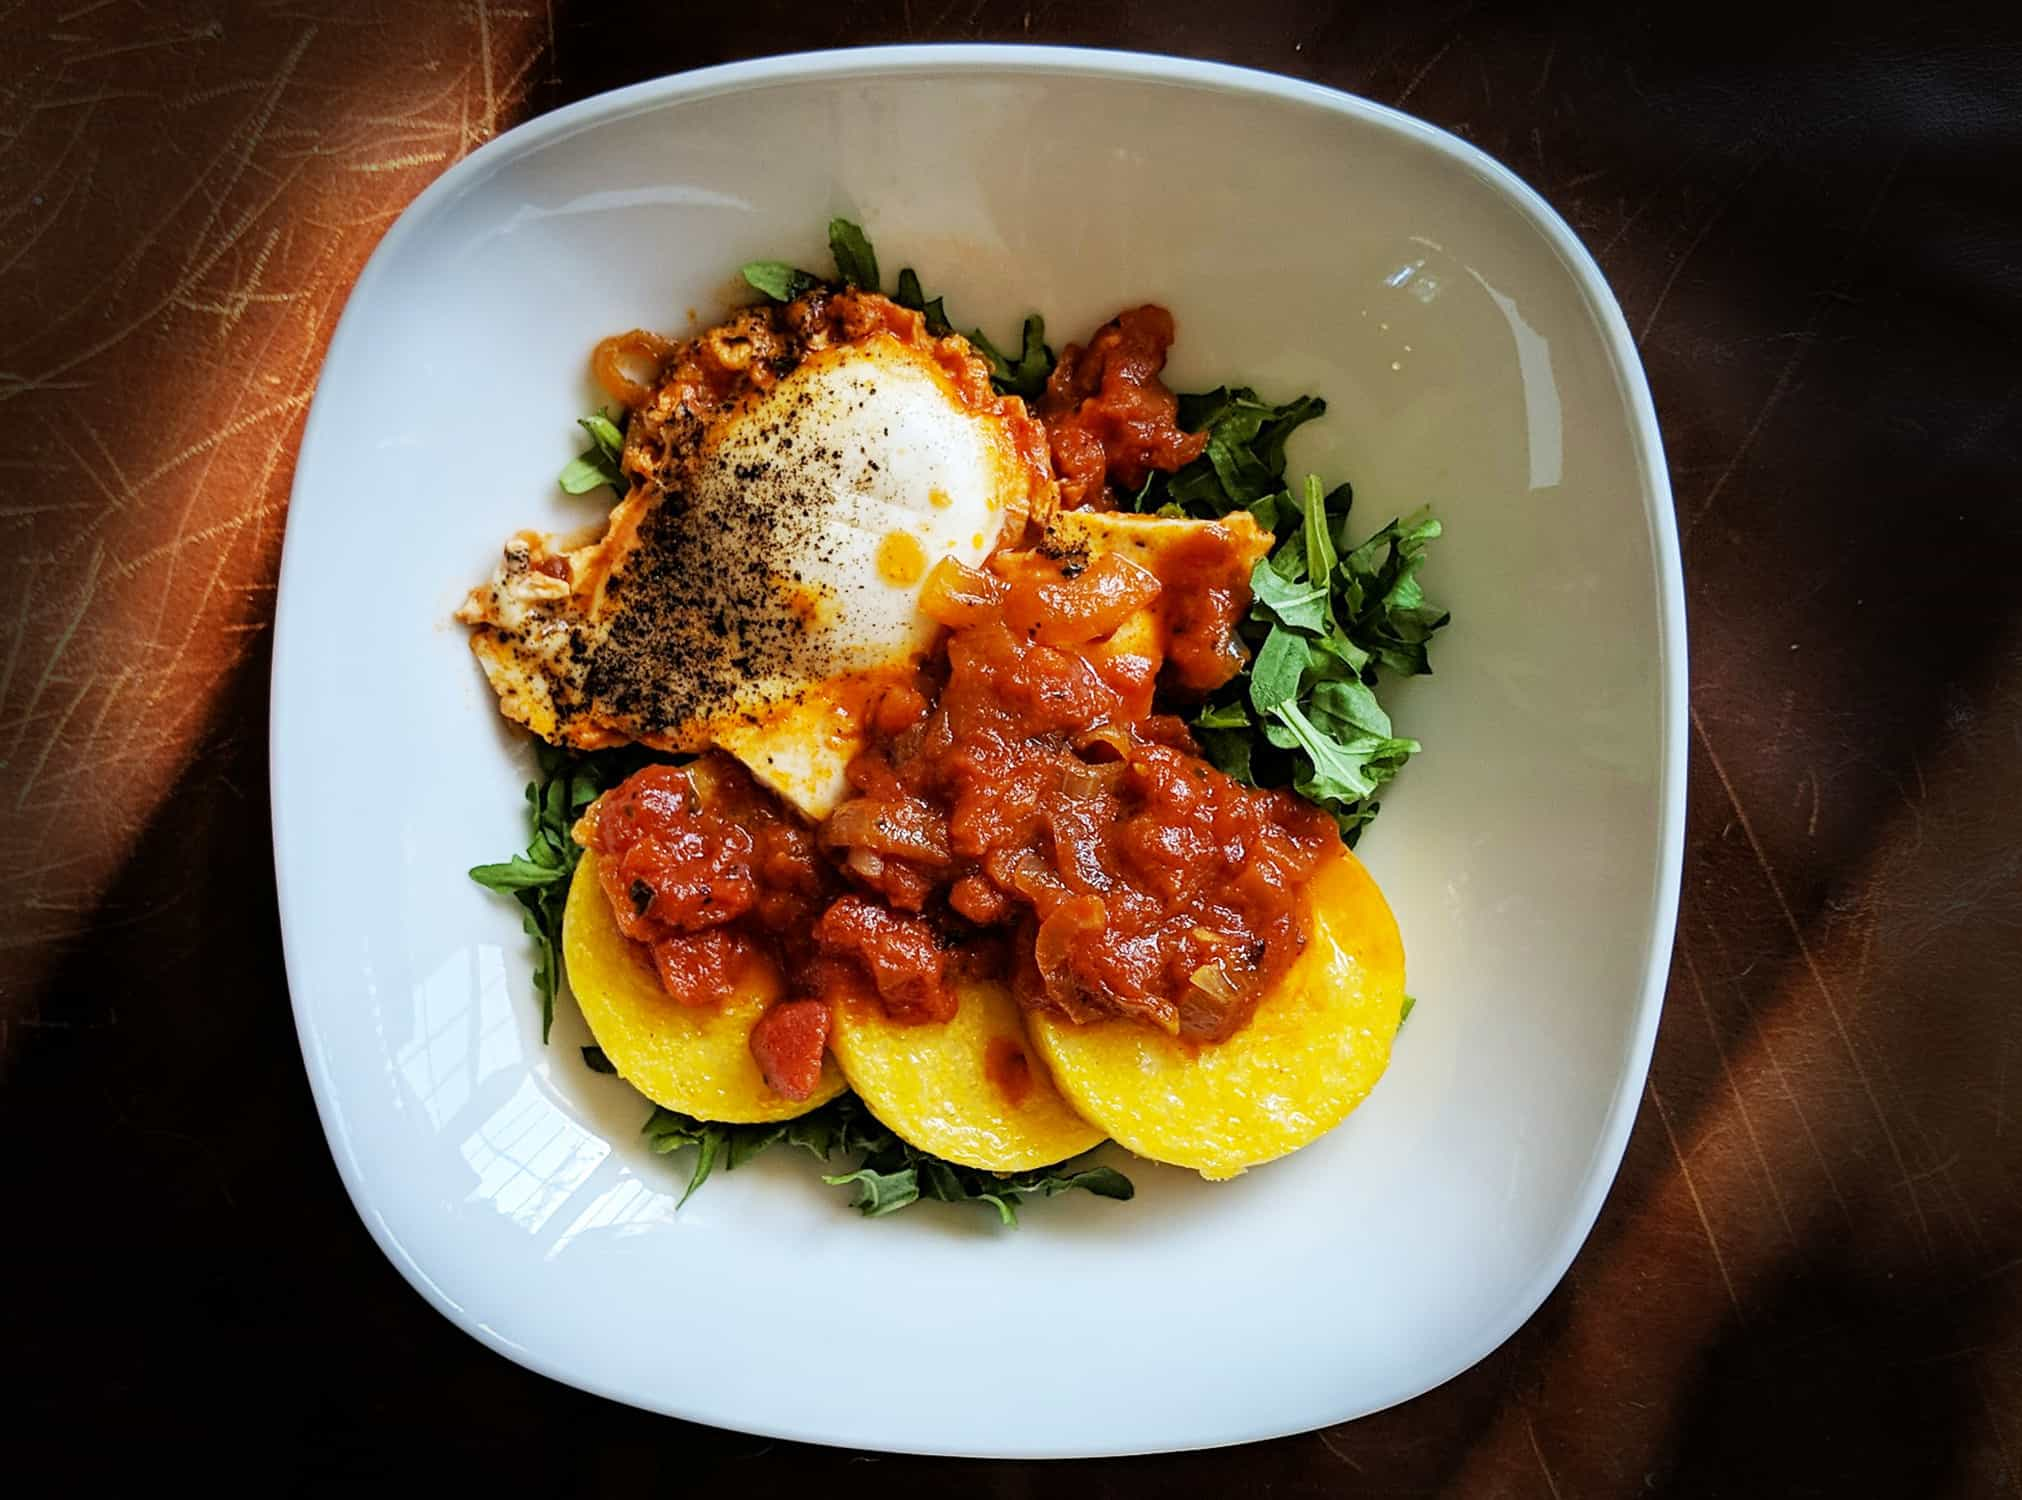 One white plate viewed from above containing one cooked egg, three slices of polenta, red marinara sauce, and some pops of green arugula.